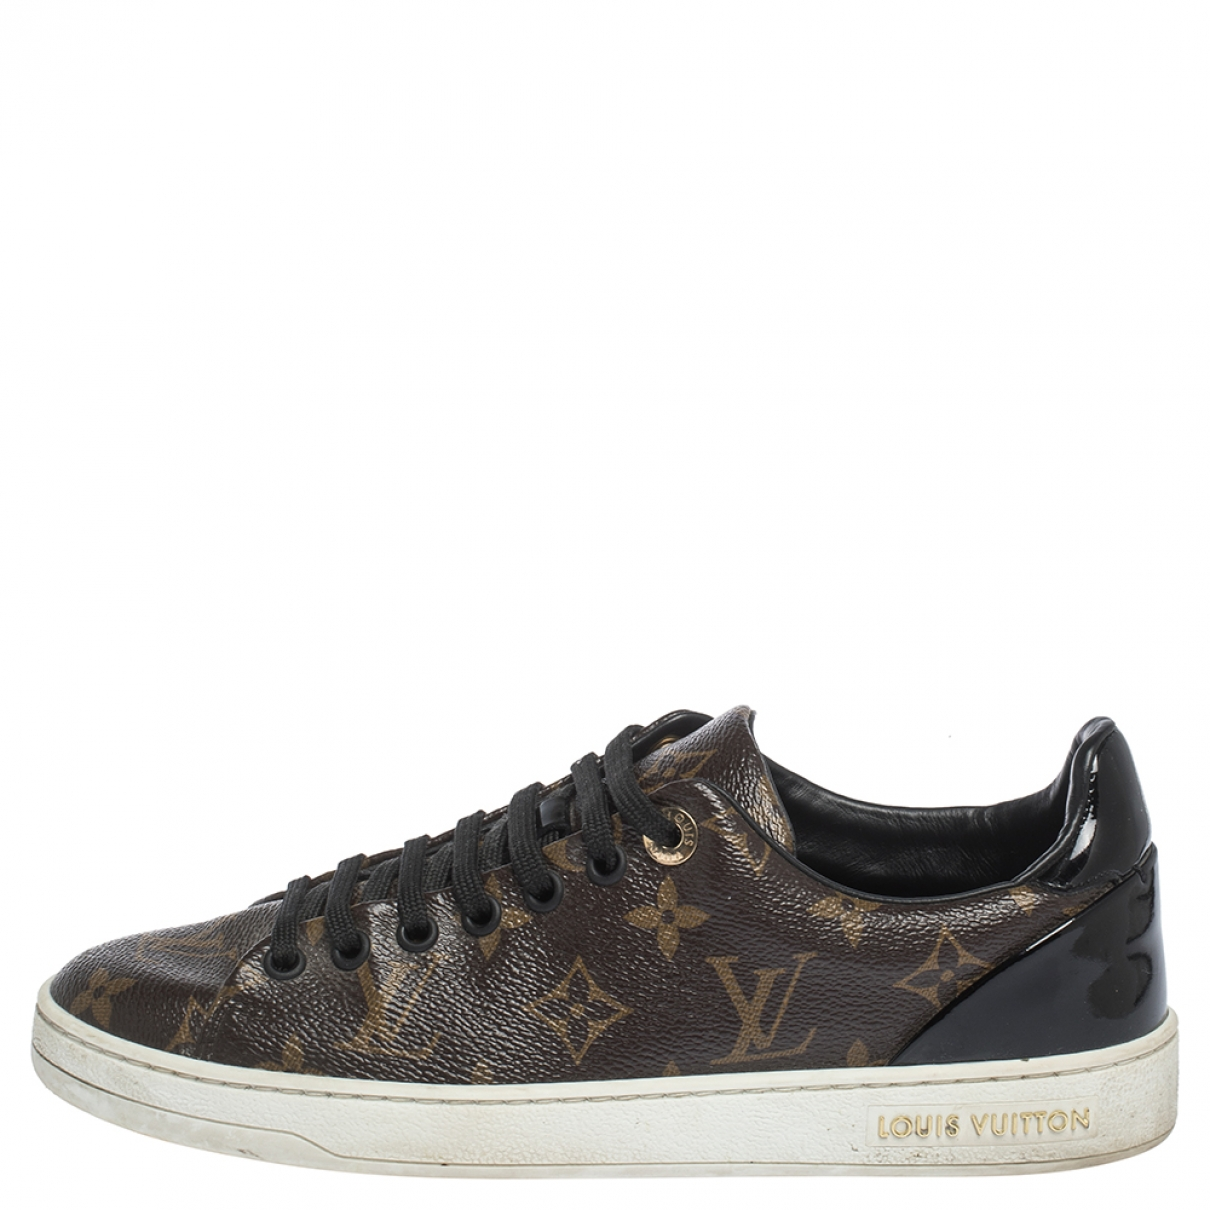 Louis Vuitton FrontRow Brown Leather Trainers for Women 5.5 US